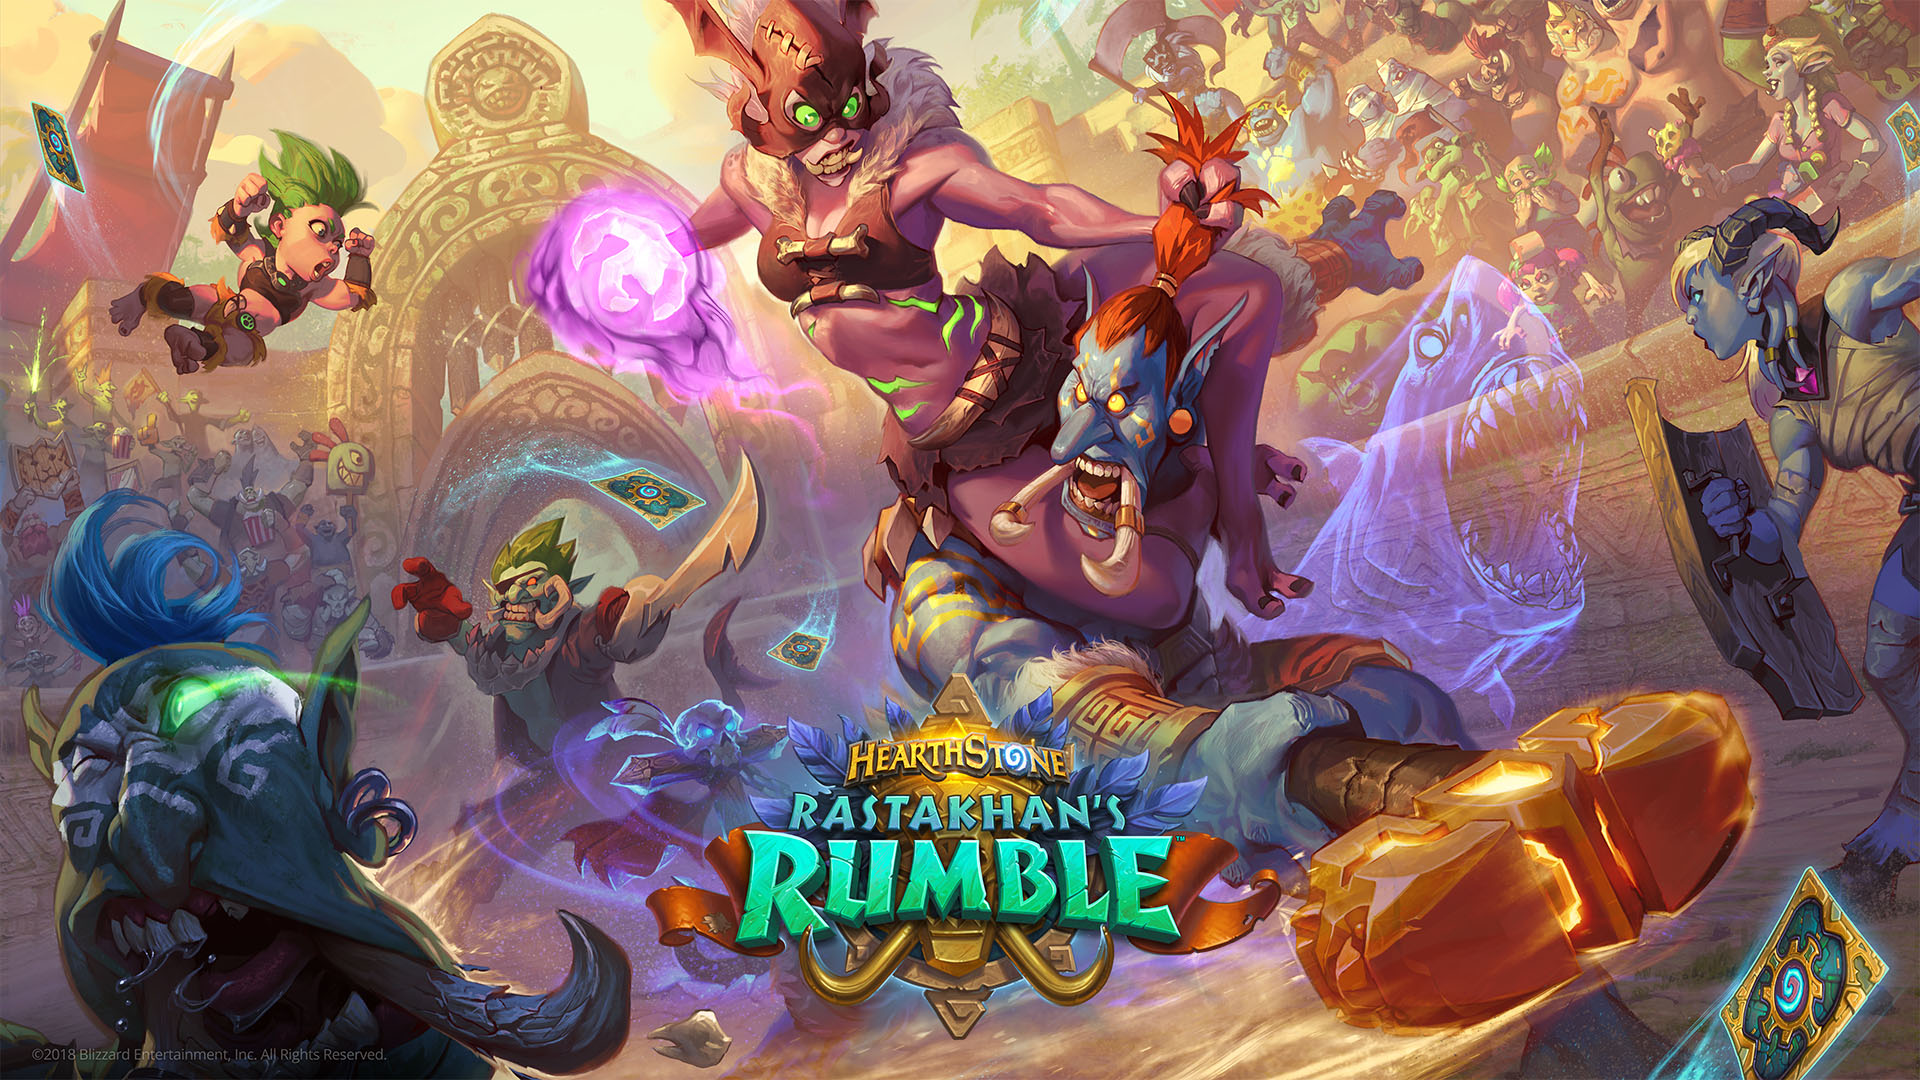 Photo of Noua expansiune din Hearthstone este Rastakhan's Rumble